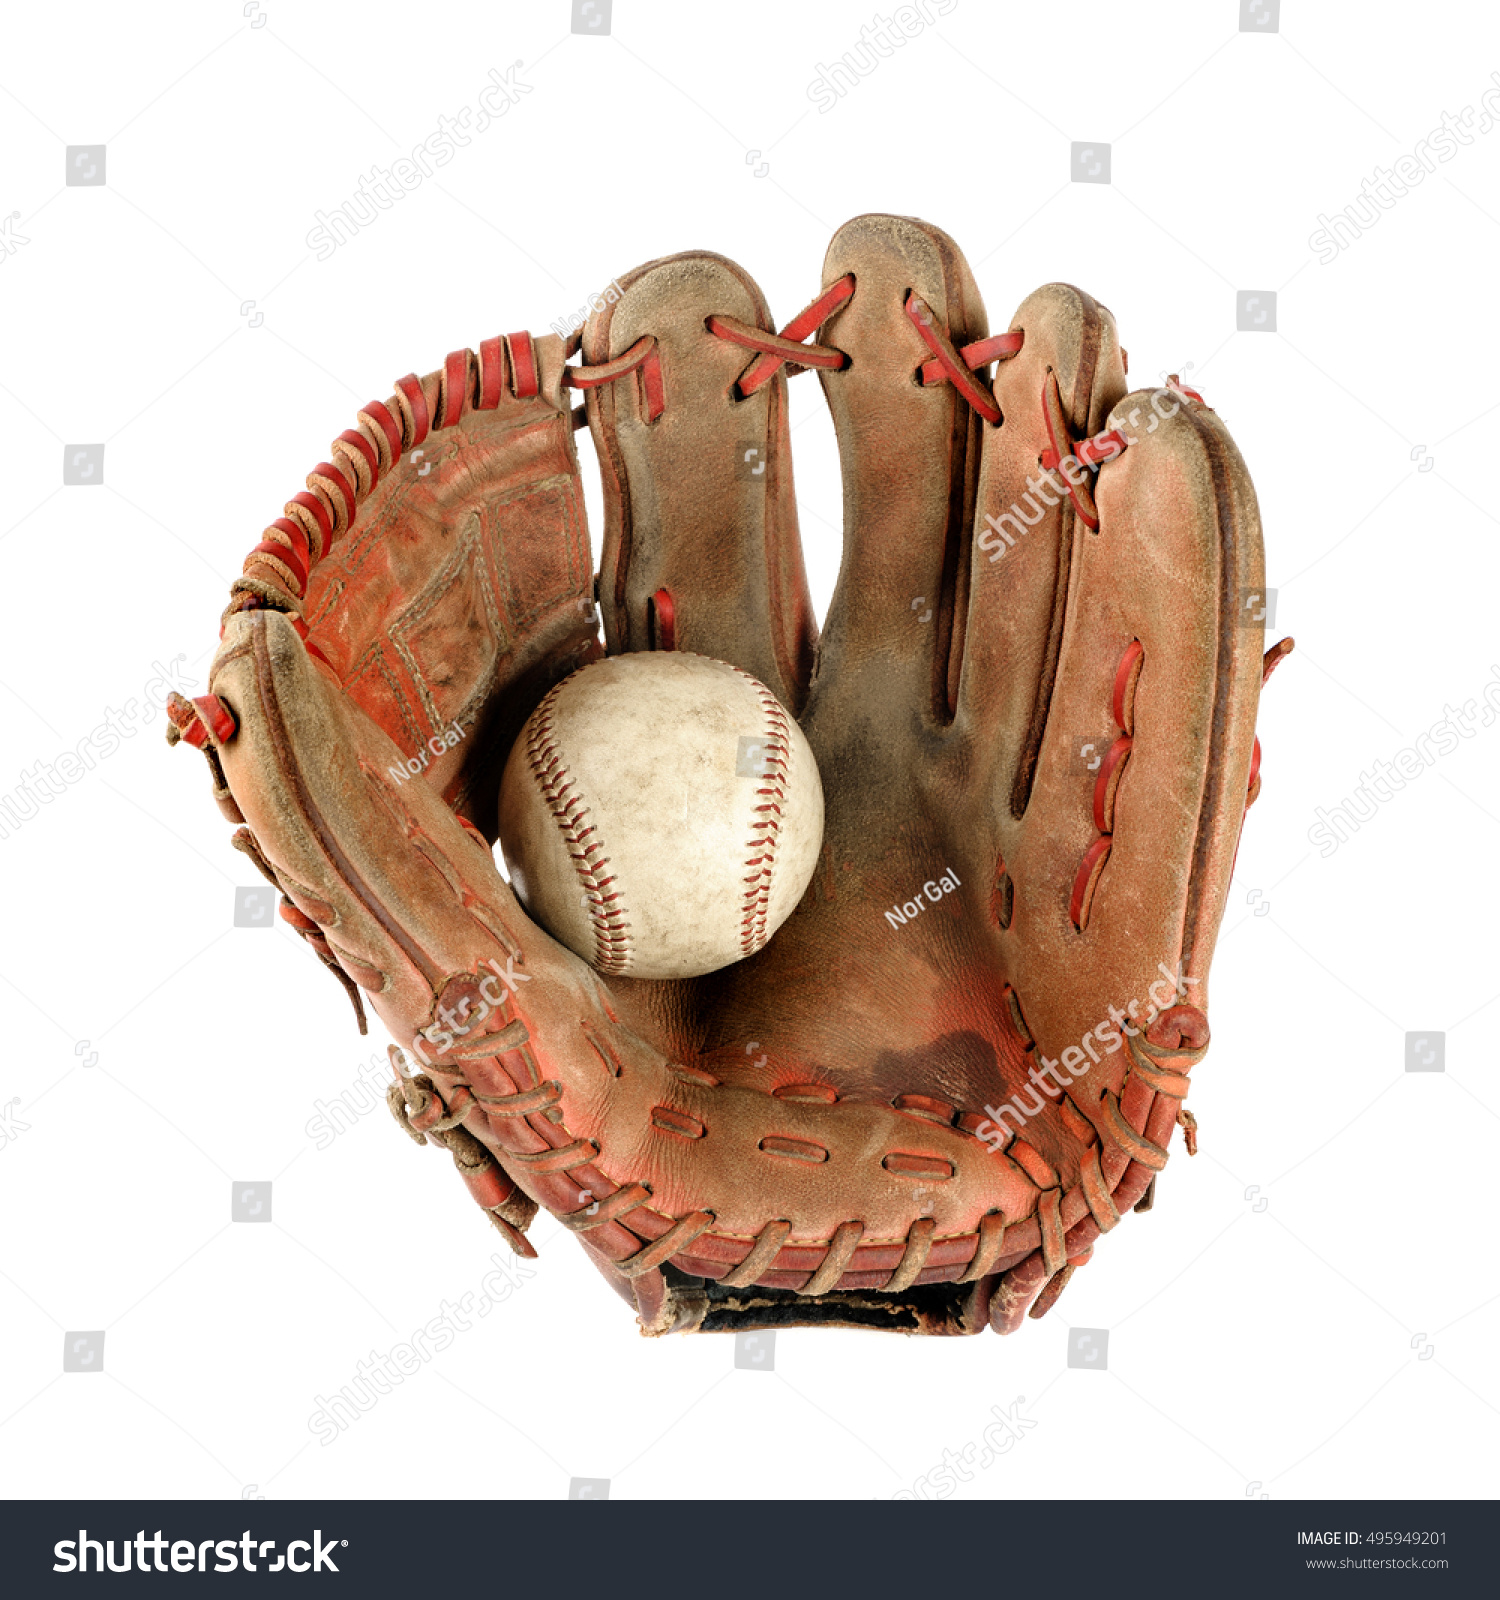 old vintage baseball glove with the baseball held in the palm isolated over white background #495949201